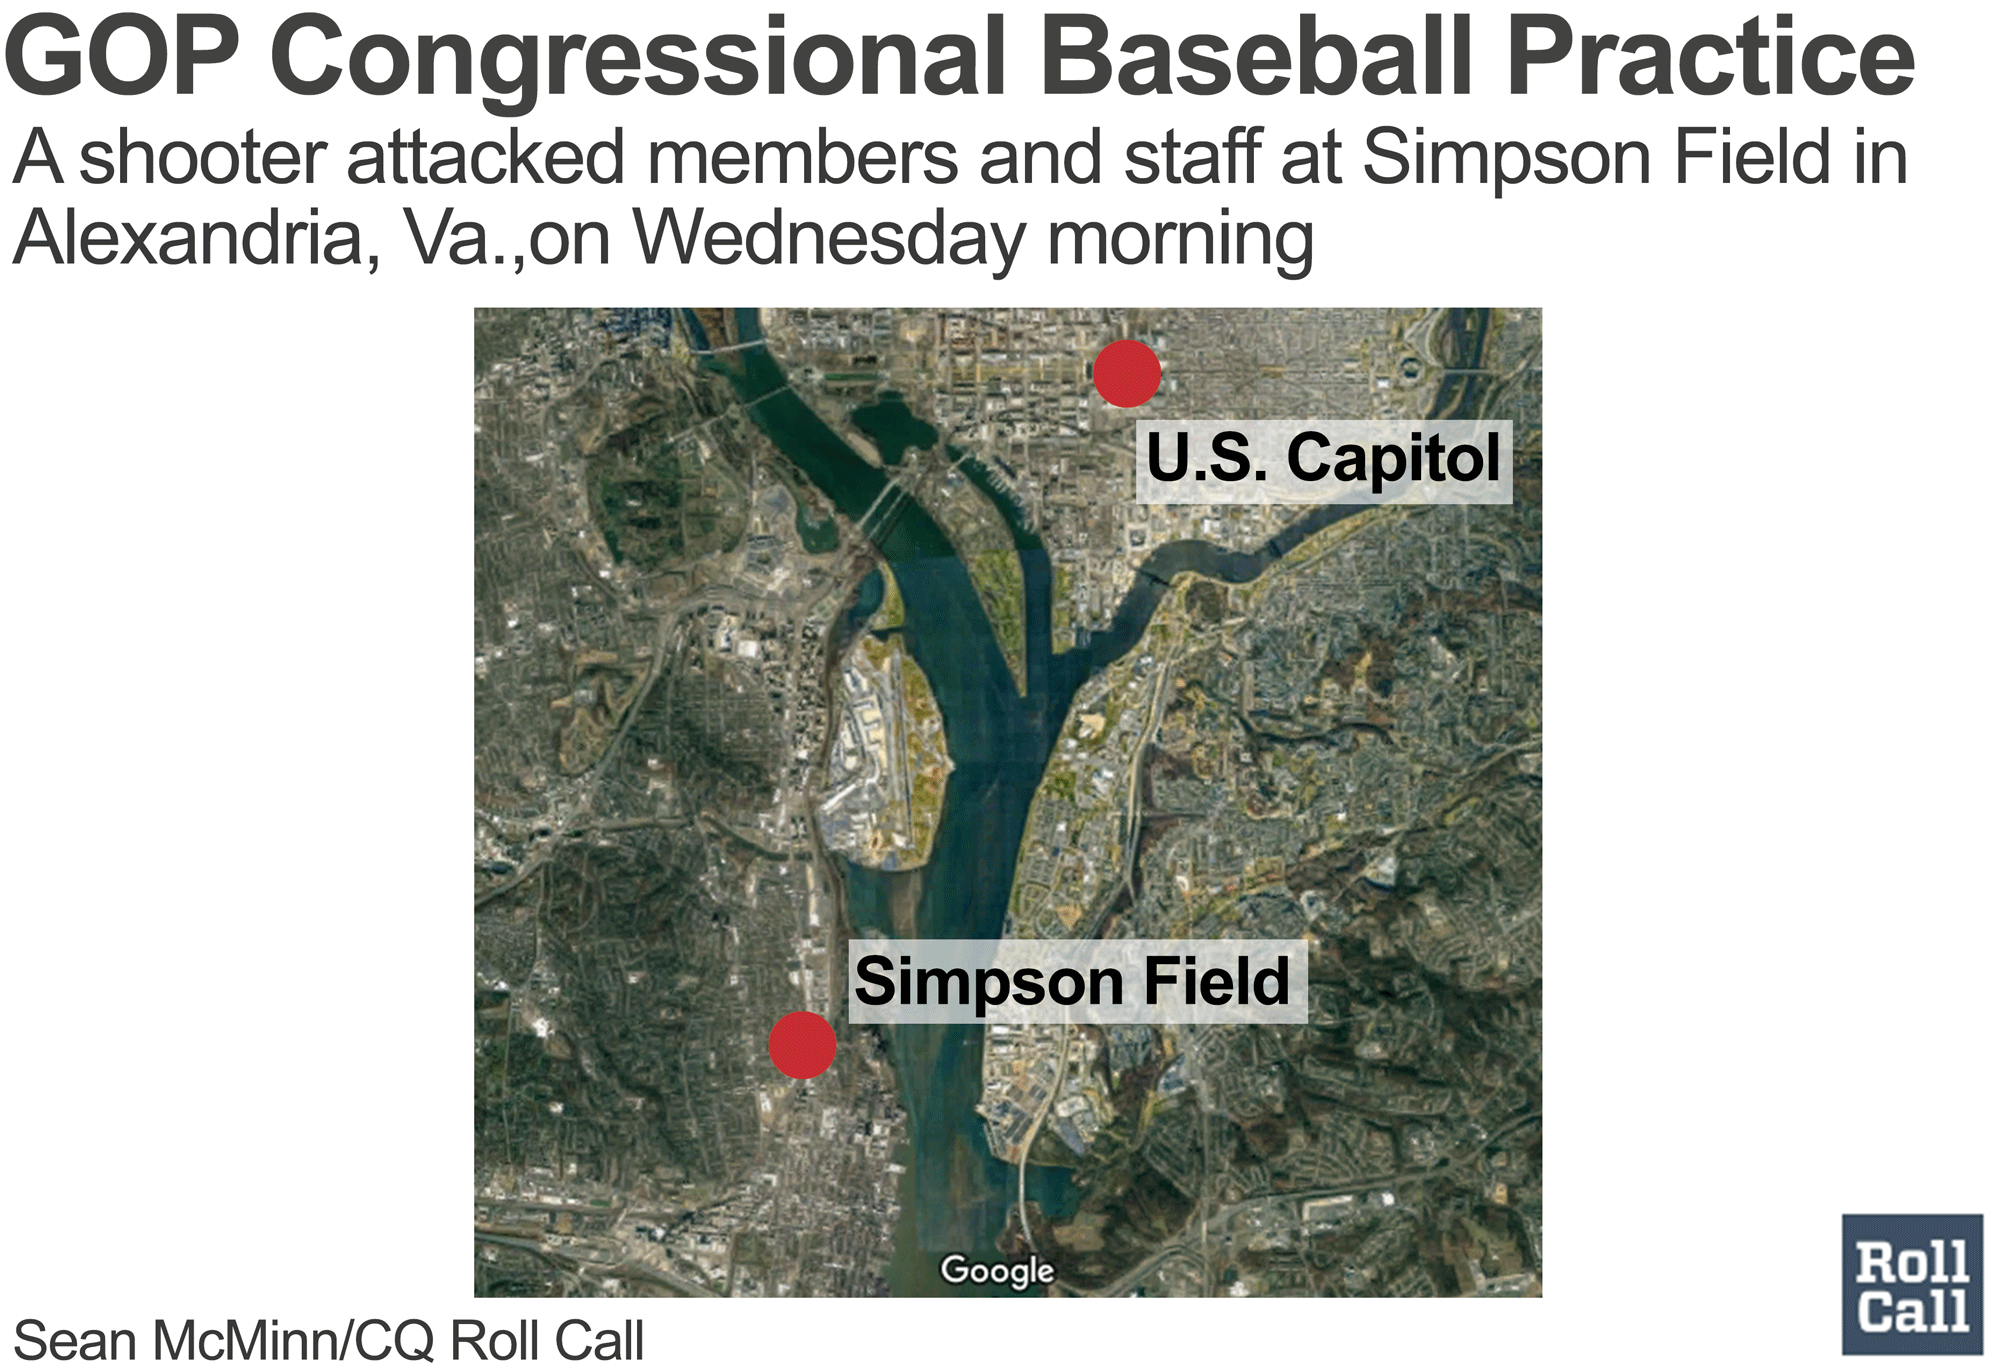 Congressional Baseball Game to be held 1 day after shootings